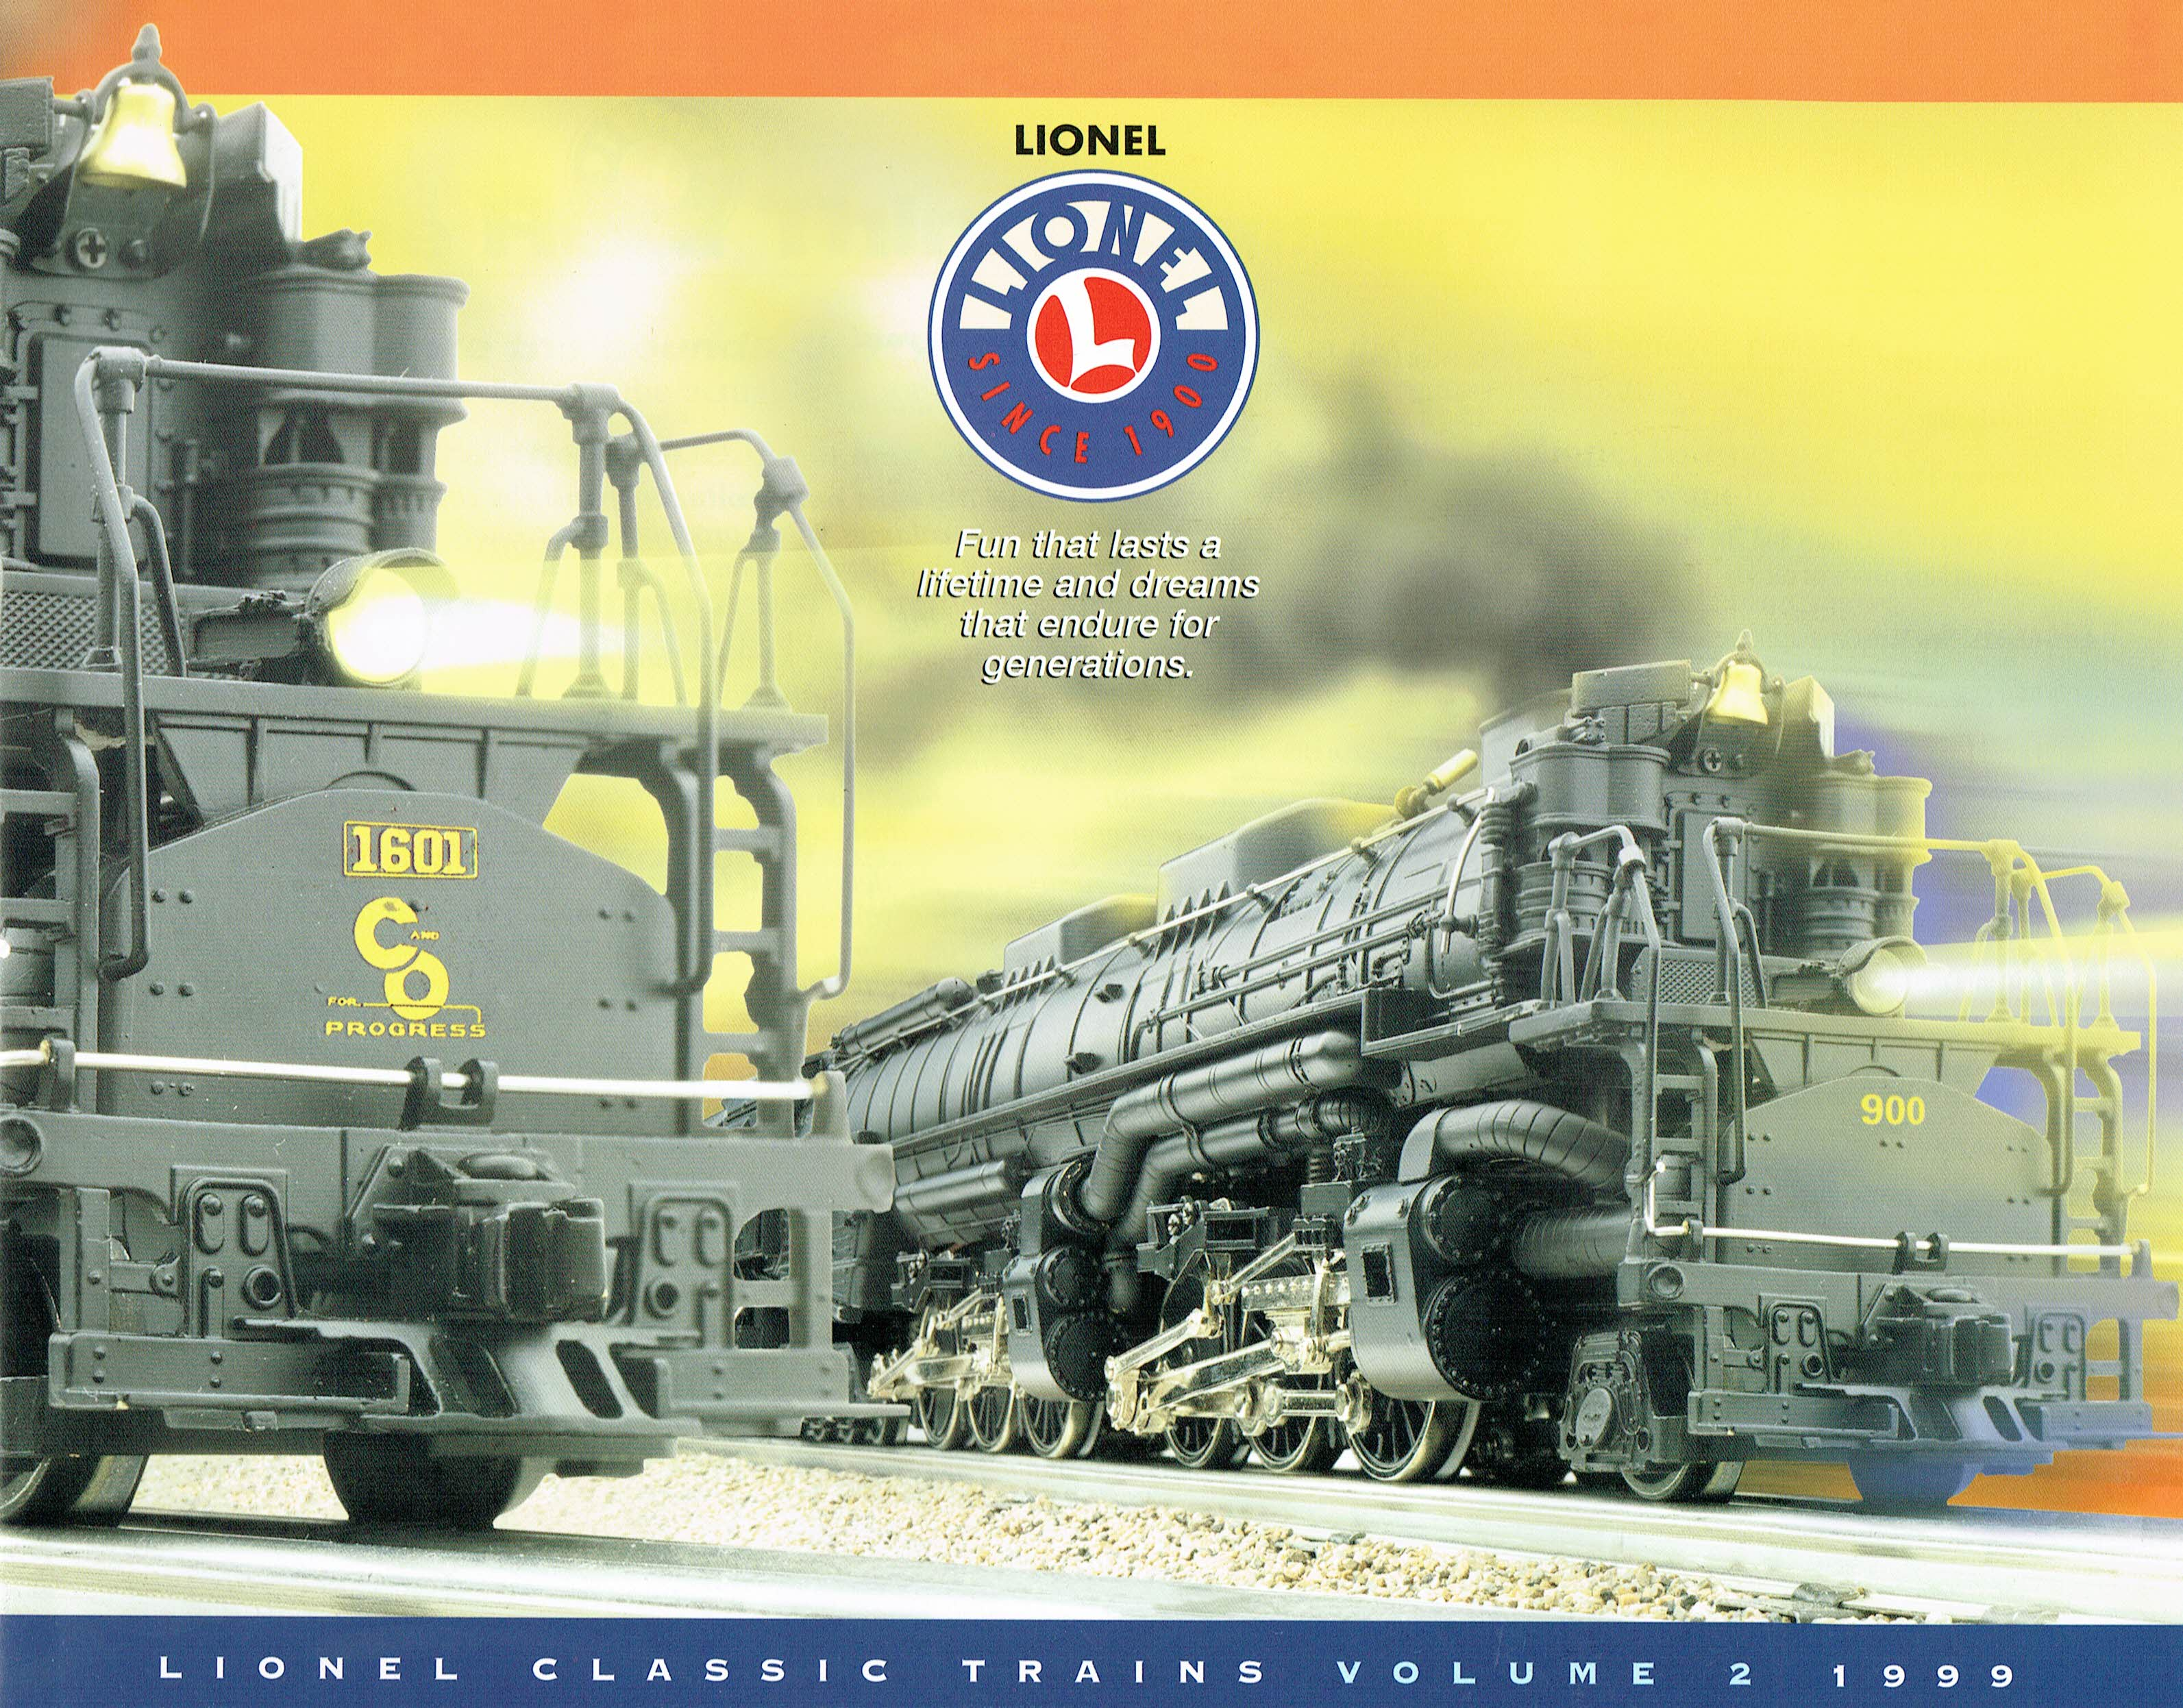 Lionel 1999 Classic Trains Volume 2 Catalog image